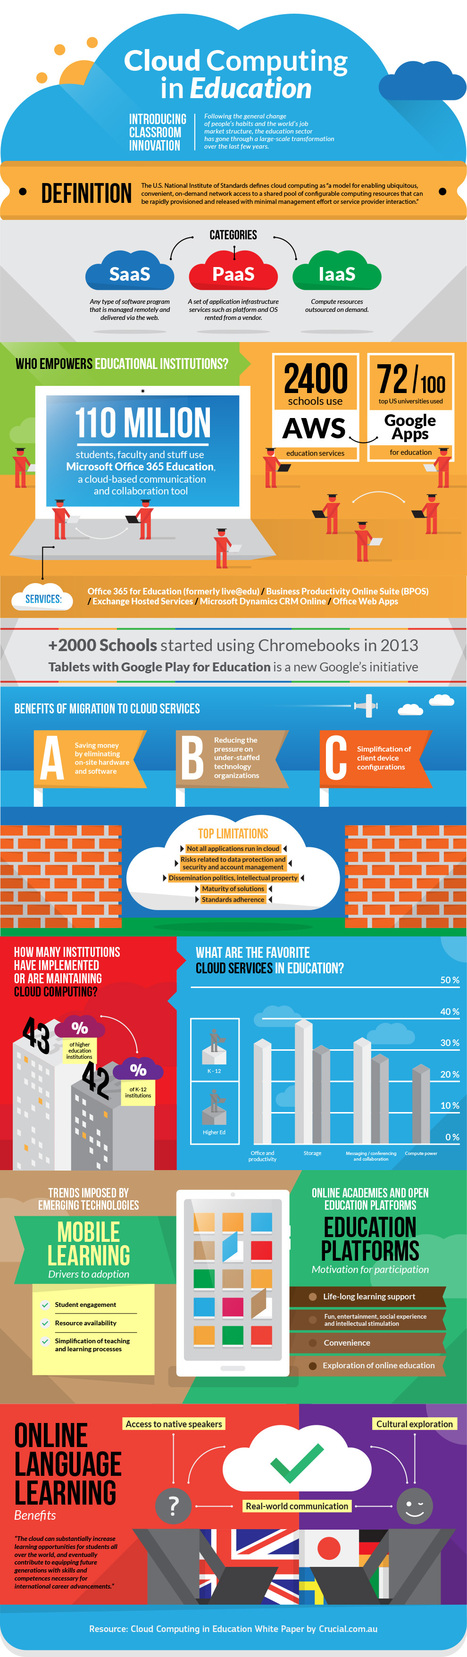 Cloud Computing in Education Infographic - e-Learning Infographics | Future of Cloud Computing and IoT | Scoop.it